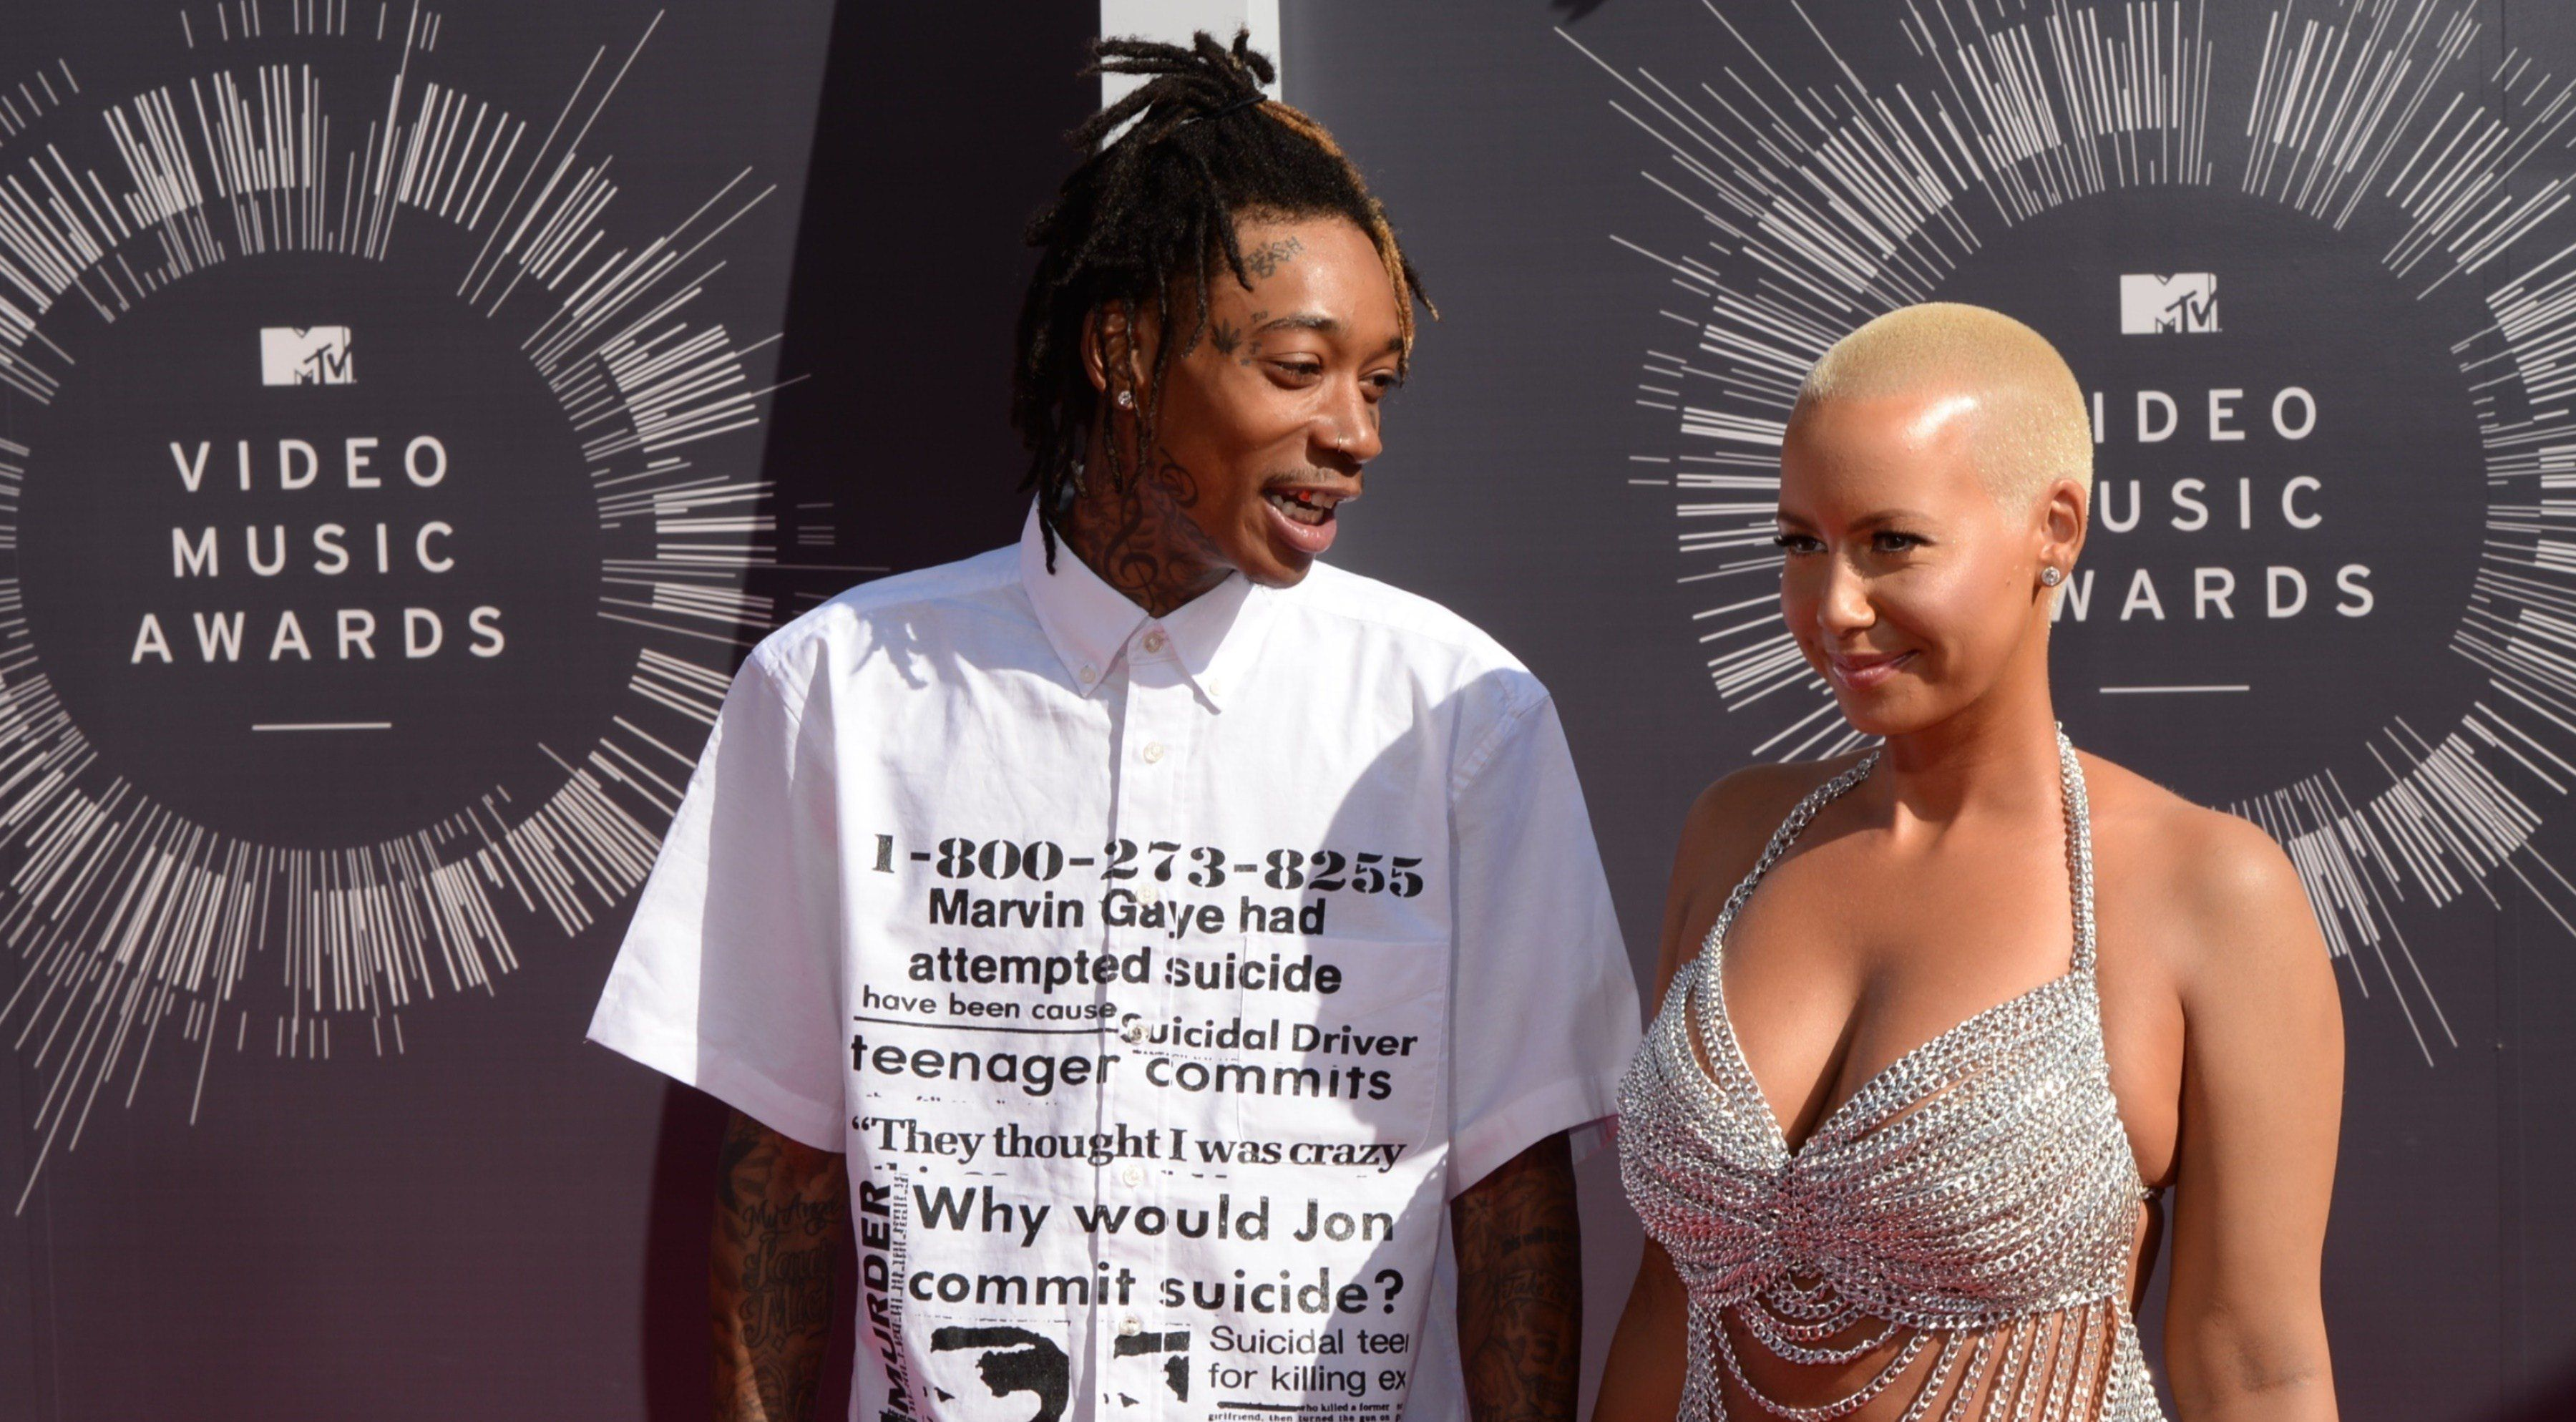 Model Amber Rose (R) and rapper Wiz Khalifa (L) arrive on the red carpet at the MTV Video Music Awards (VMA), August 24, 2014 at The Forum in Inglewood, California.   AFP PHOTO / Mark Ralston        (Photo credit should read MARK RALSTON/AFP/Getty Images)